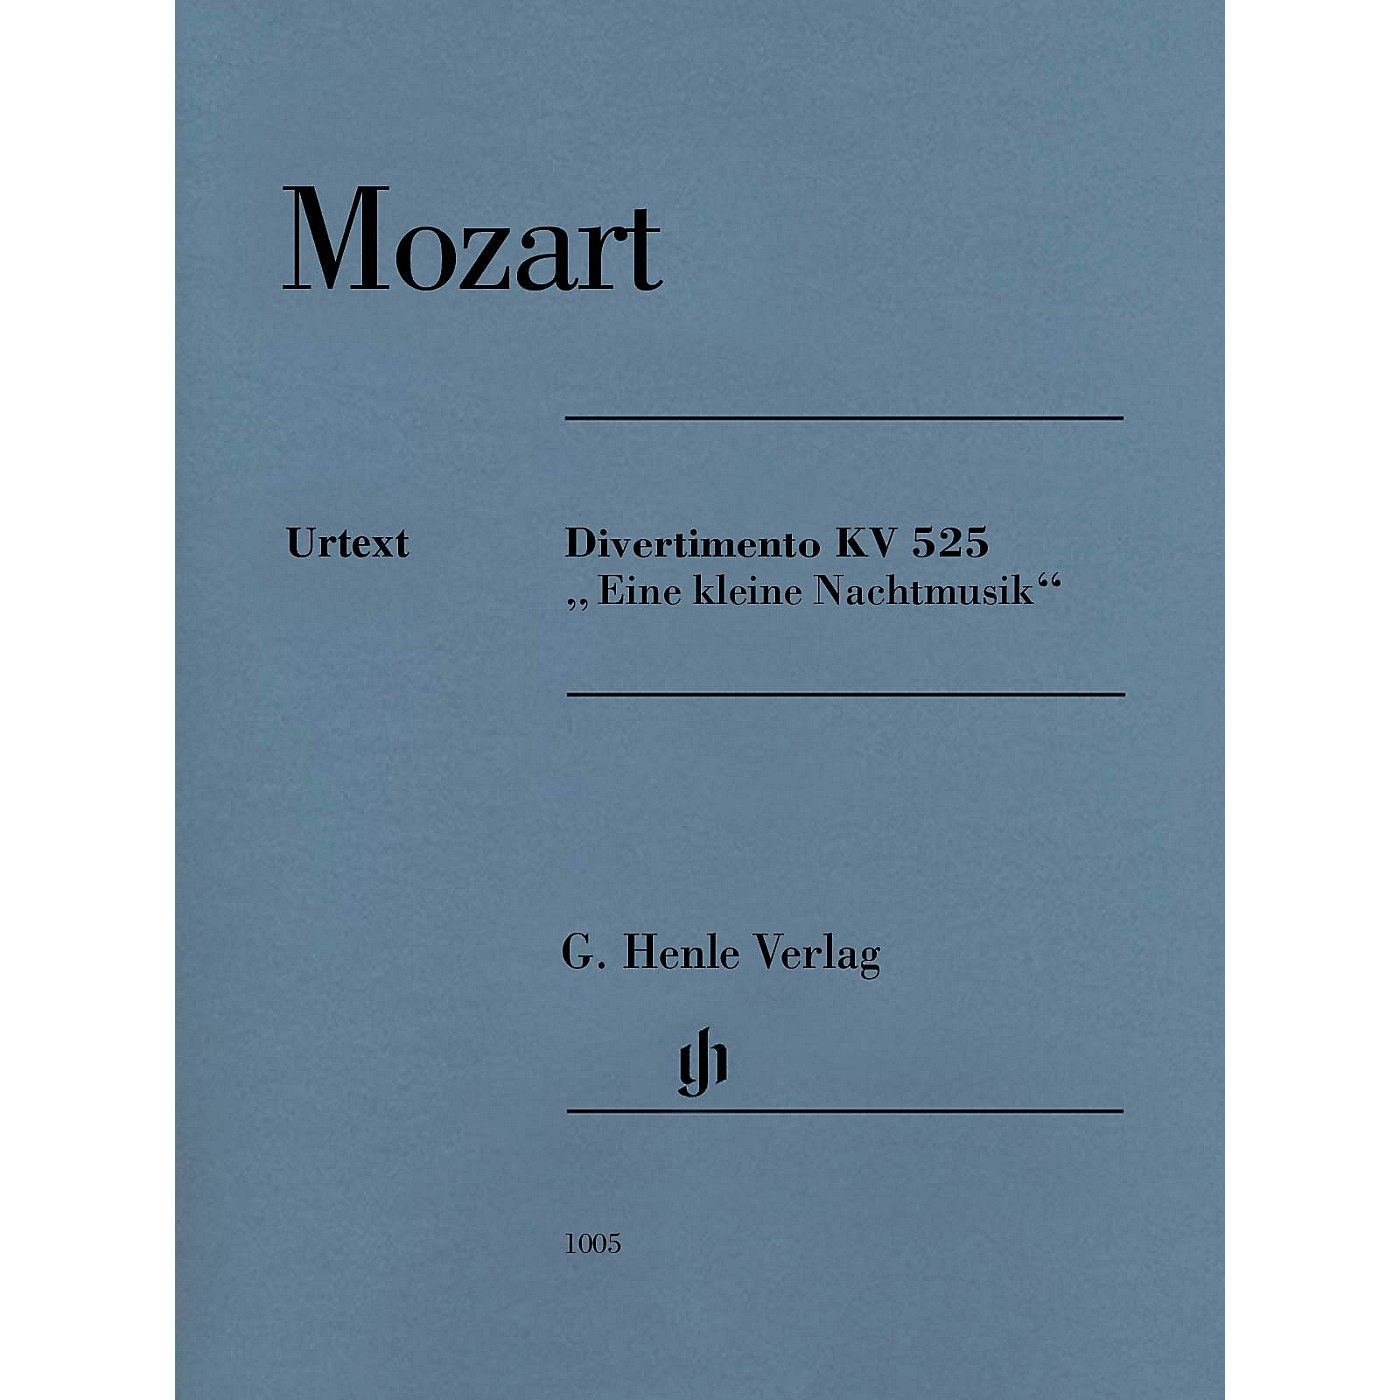 G. Henle Verlag Divertimento K525 Eine kleine Nachtmusik Henle Music Composed by Mozart Edited by Wolf-Dieter Seiffert thumbnail